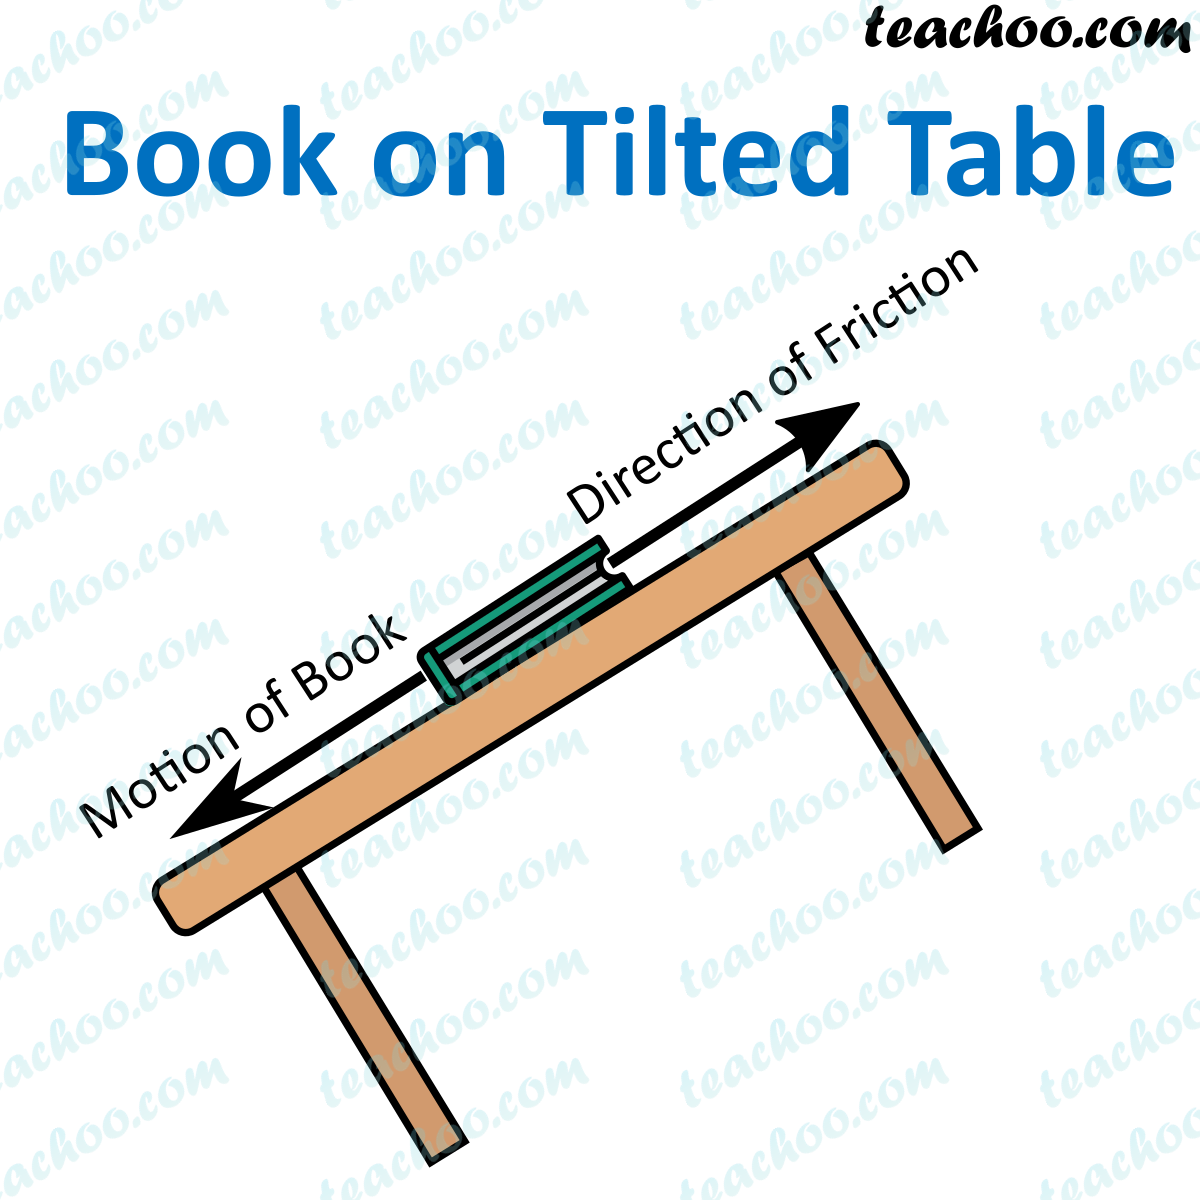 book-on-tilted-table.png